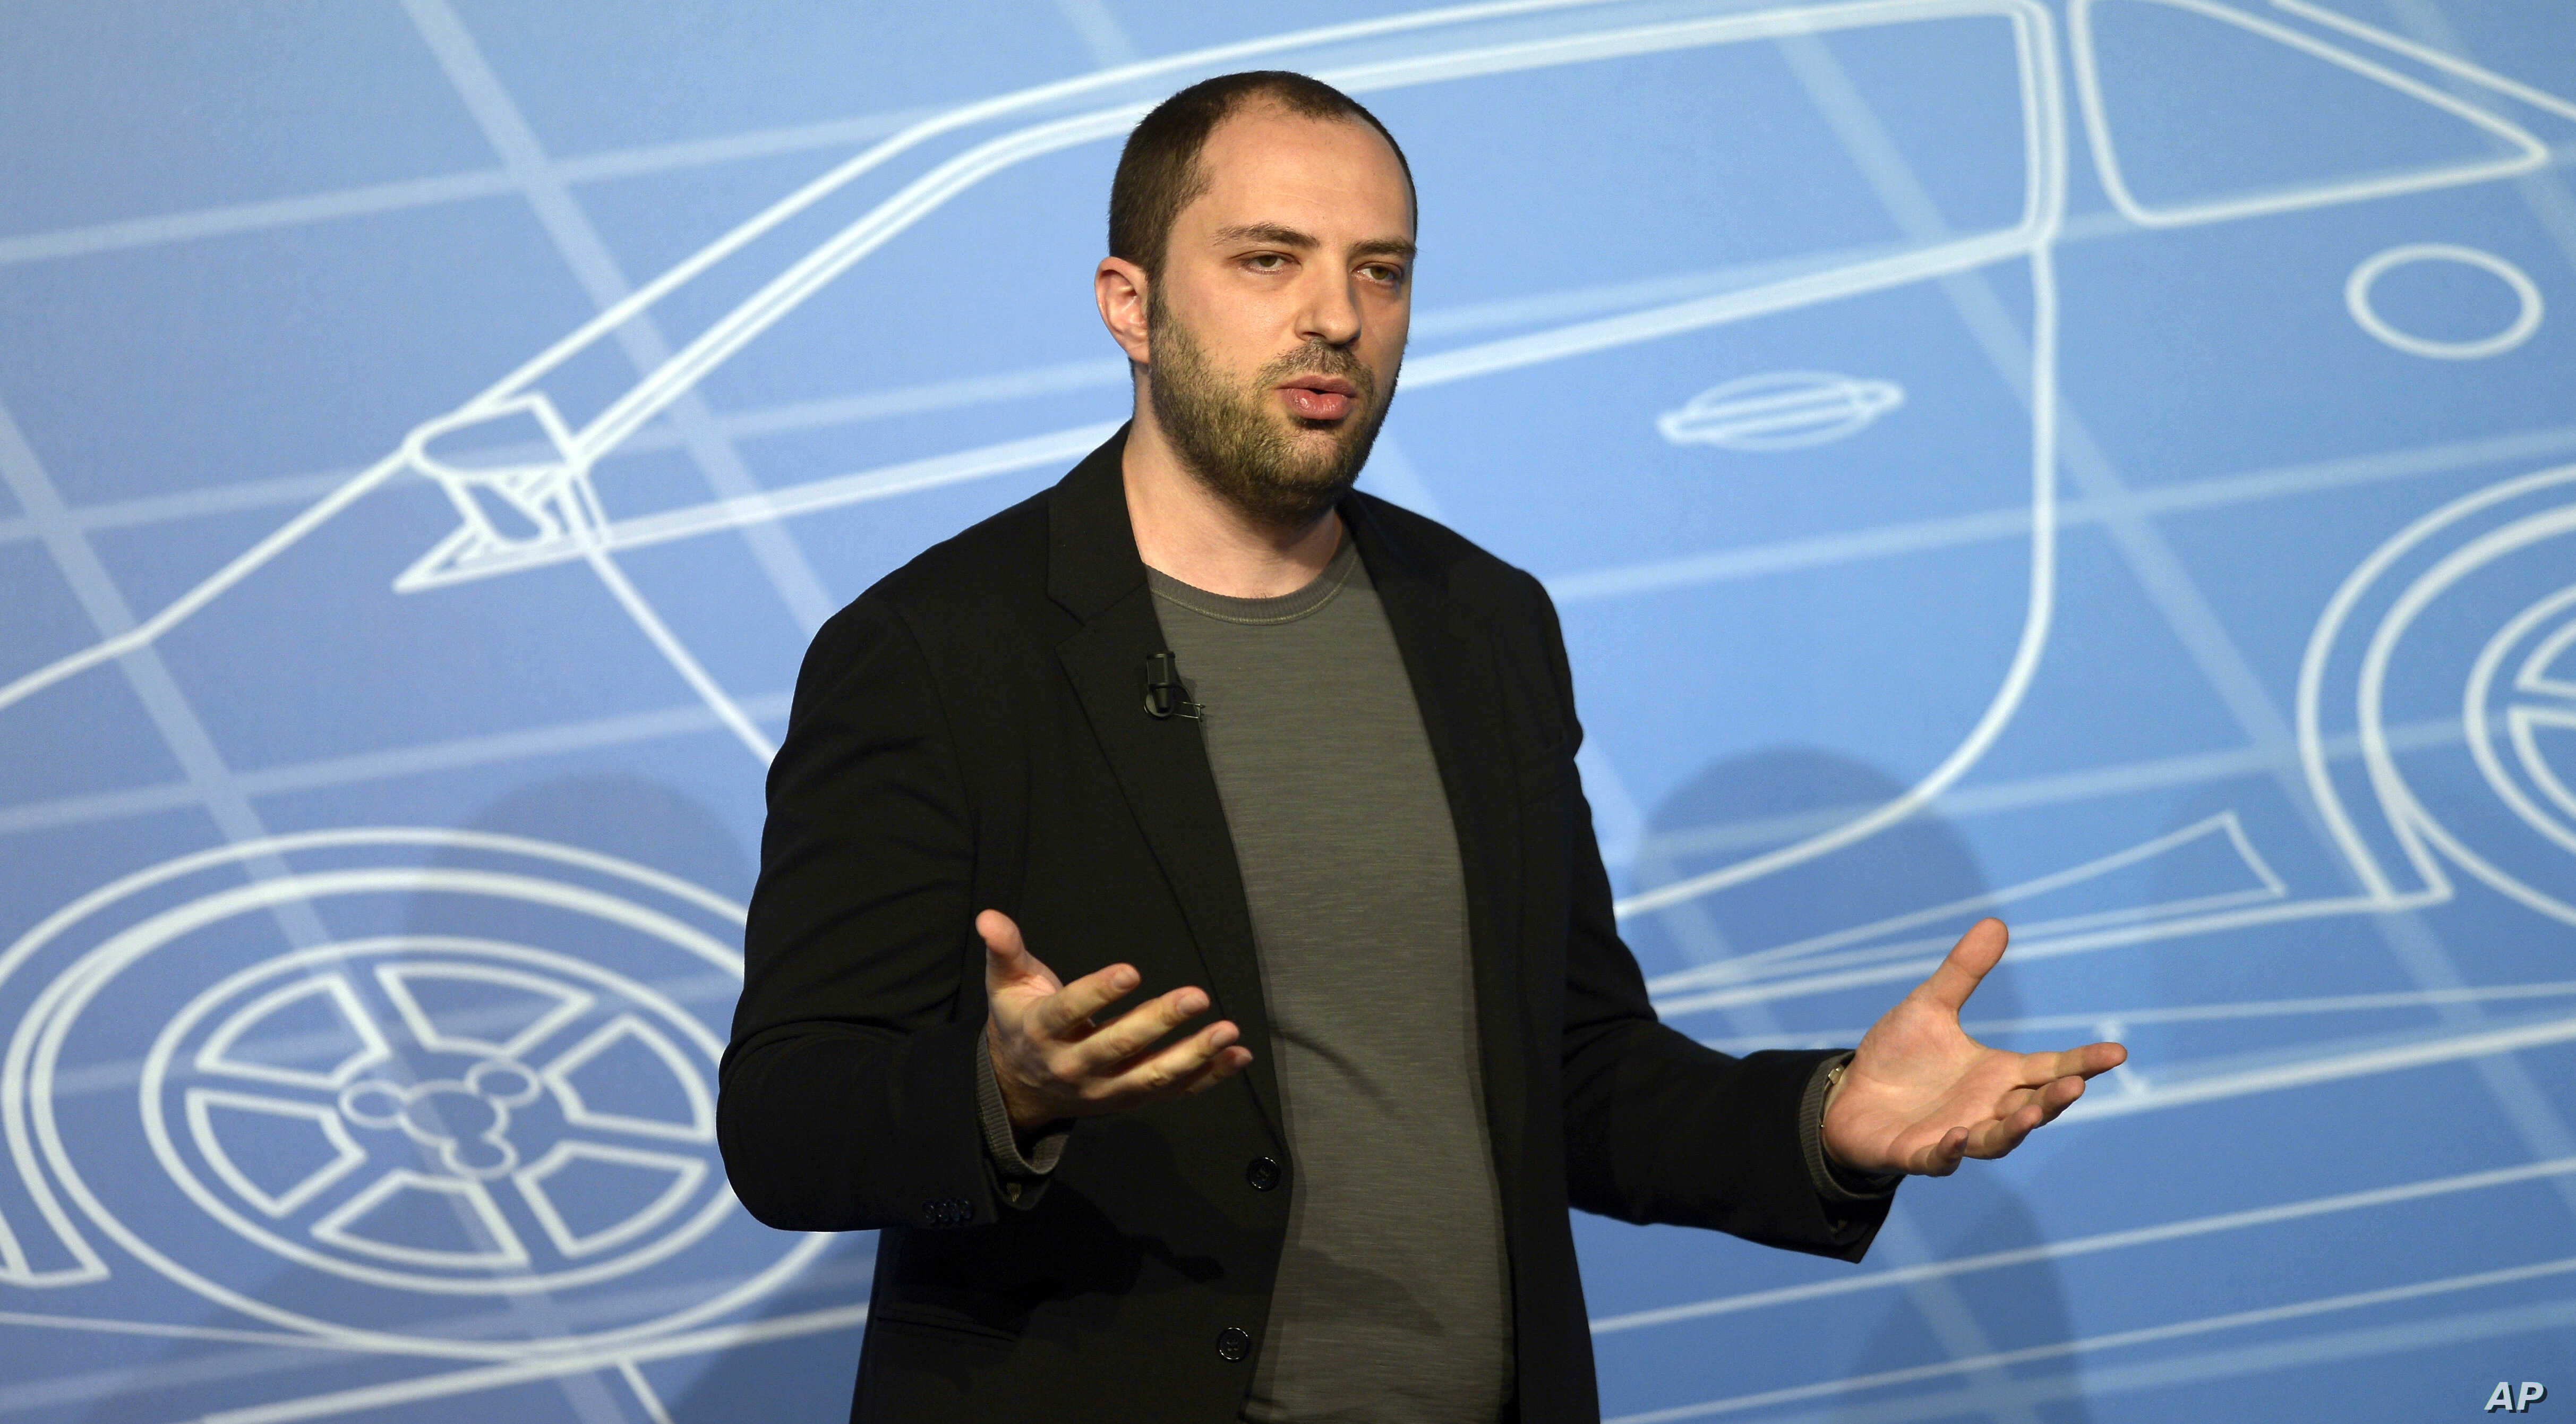 FILE - In this Feb. 24, 2014, file photo, WhatsApp co-founder and CEO Jan Koum speaks during a conference at the Mobile World Congress,  in Barcelona, Spain.